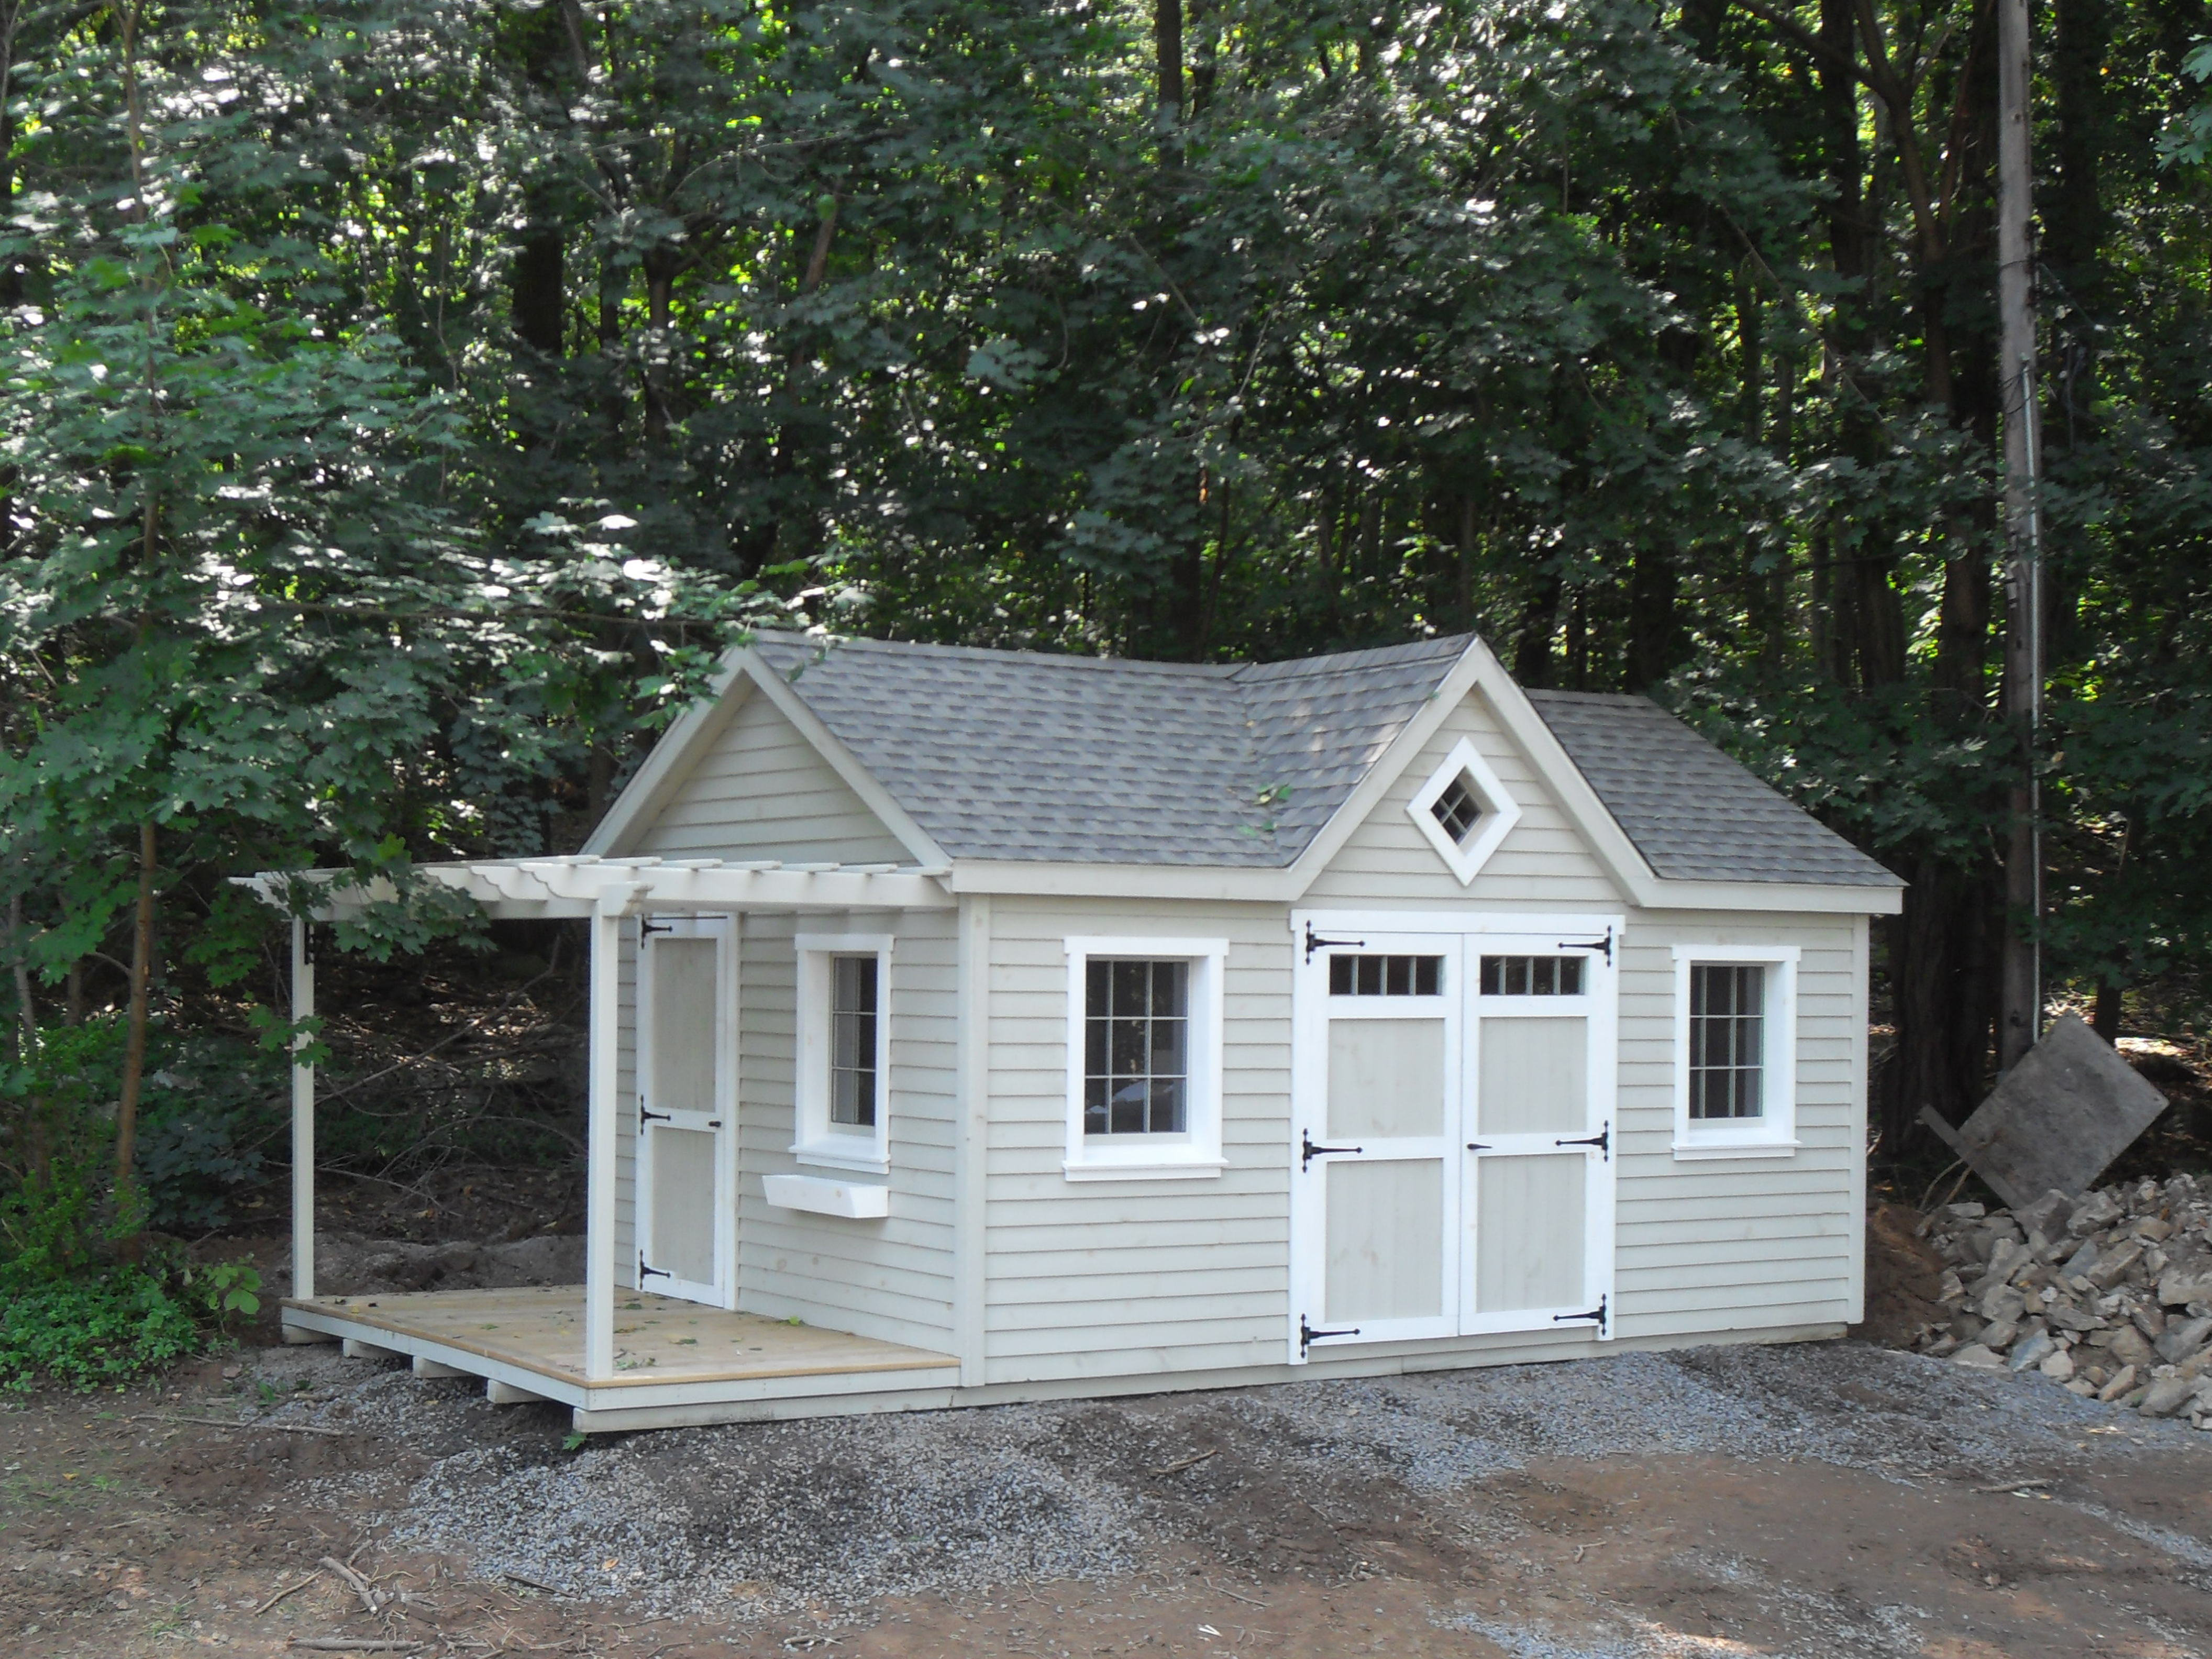 Shed w, Attached Pergola 6_x12_. Cape Cod, rough sawn, recessed wood sash windows